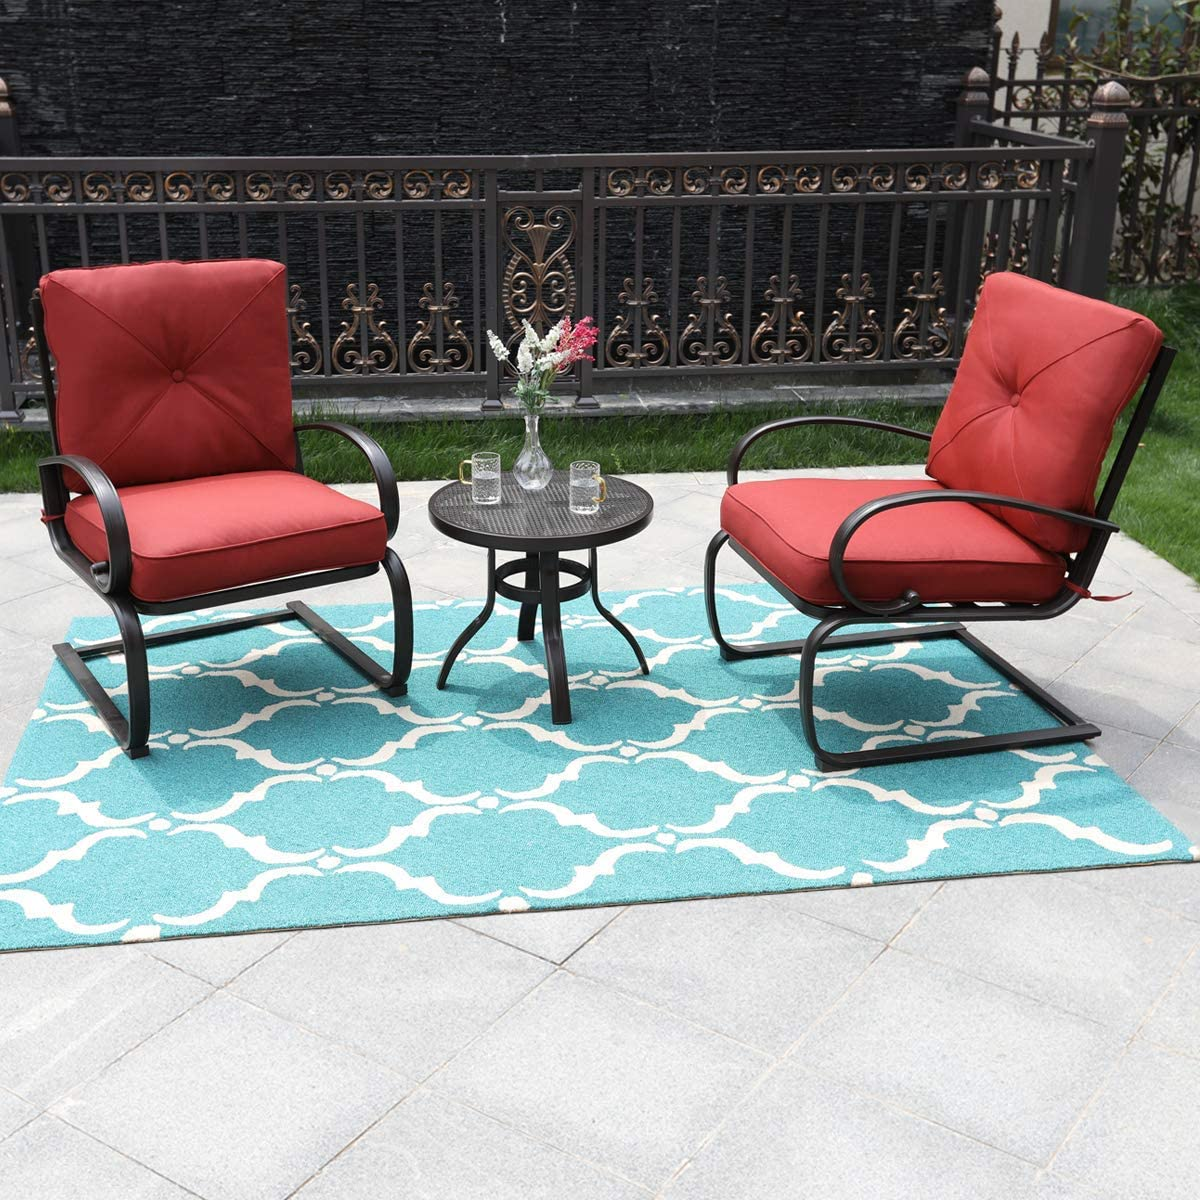 PHI VILLA Patio Set 3 Piece Outdoor Springs Bistro Chairs and Round Table Outdoor Furniture Set with Red Cushioned Seats